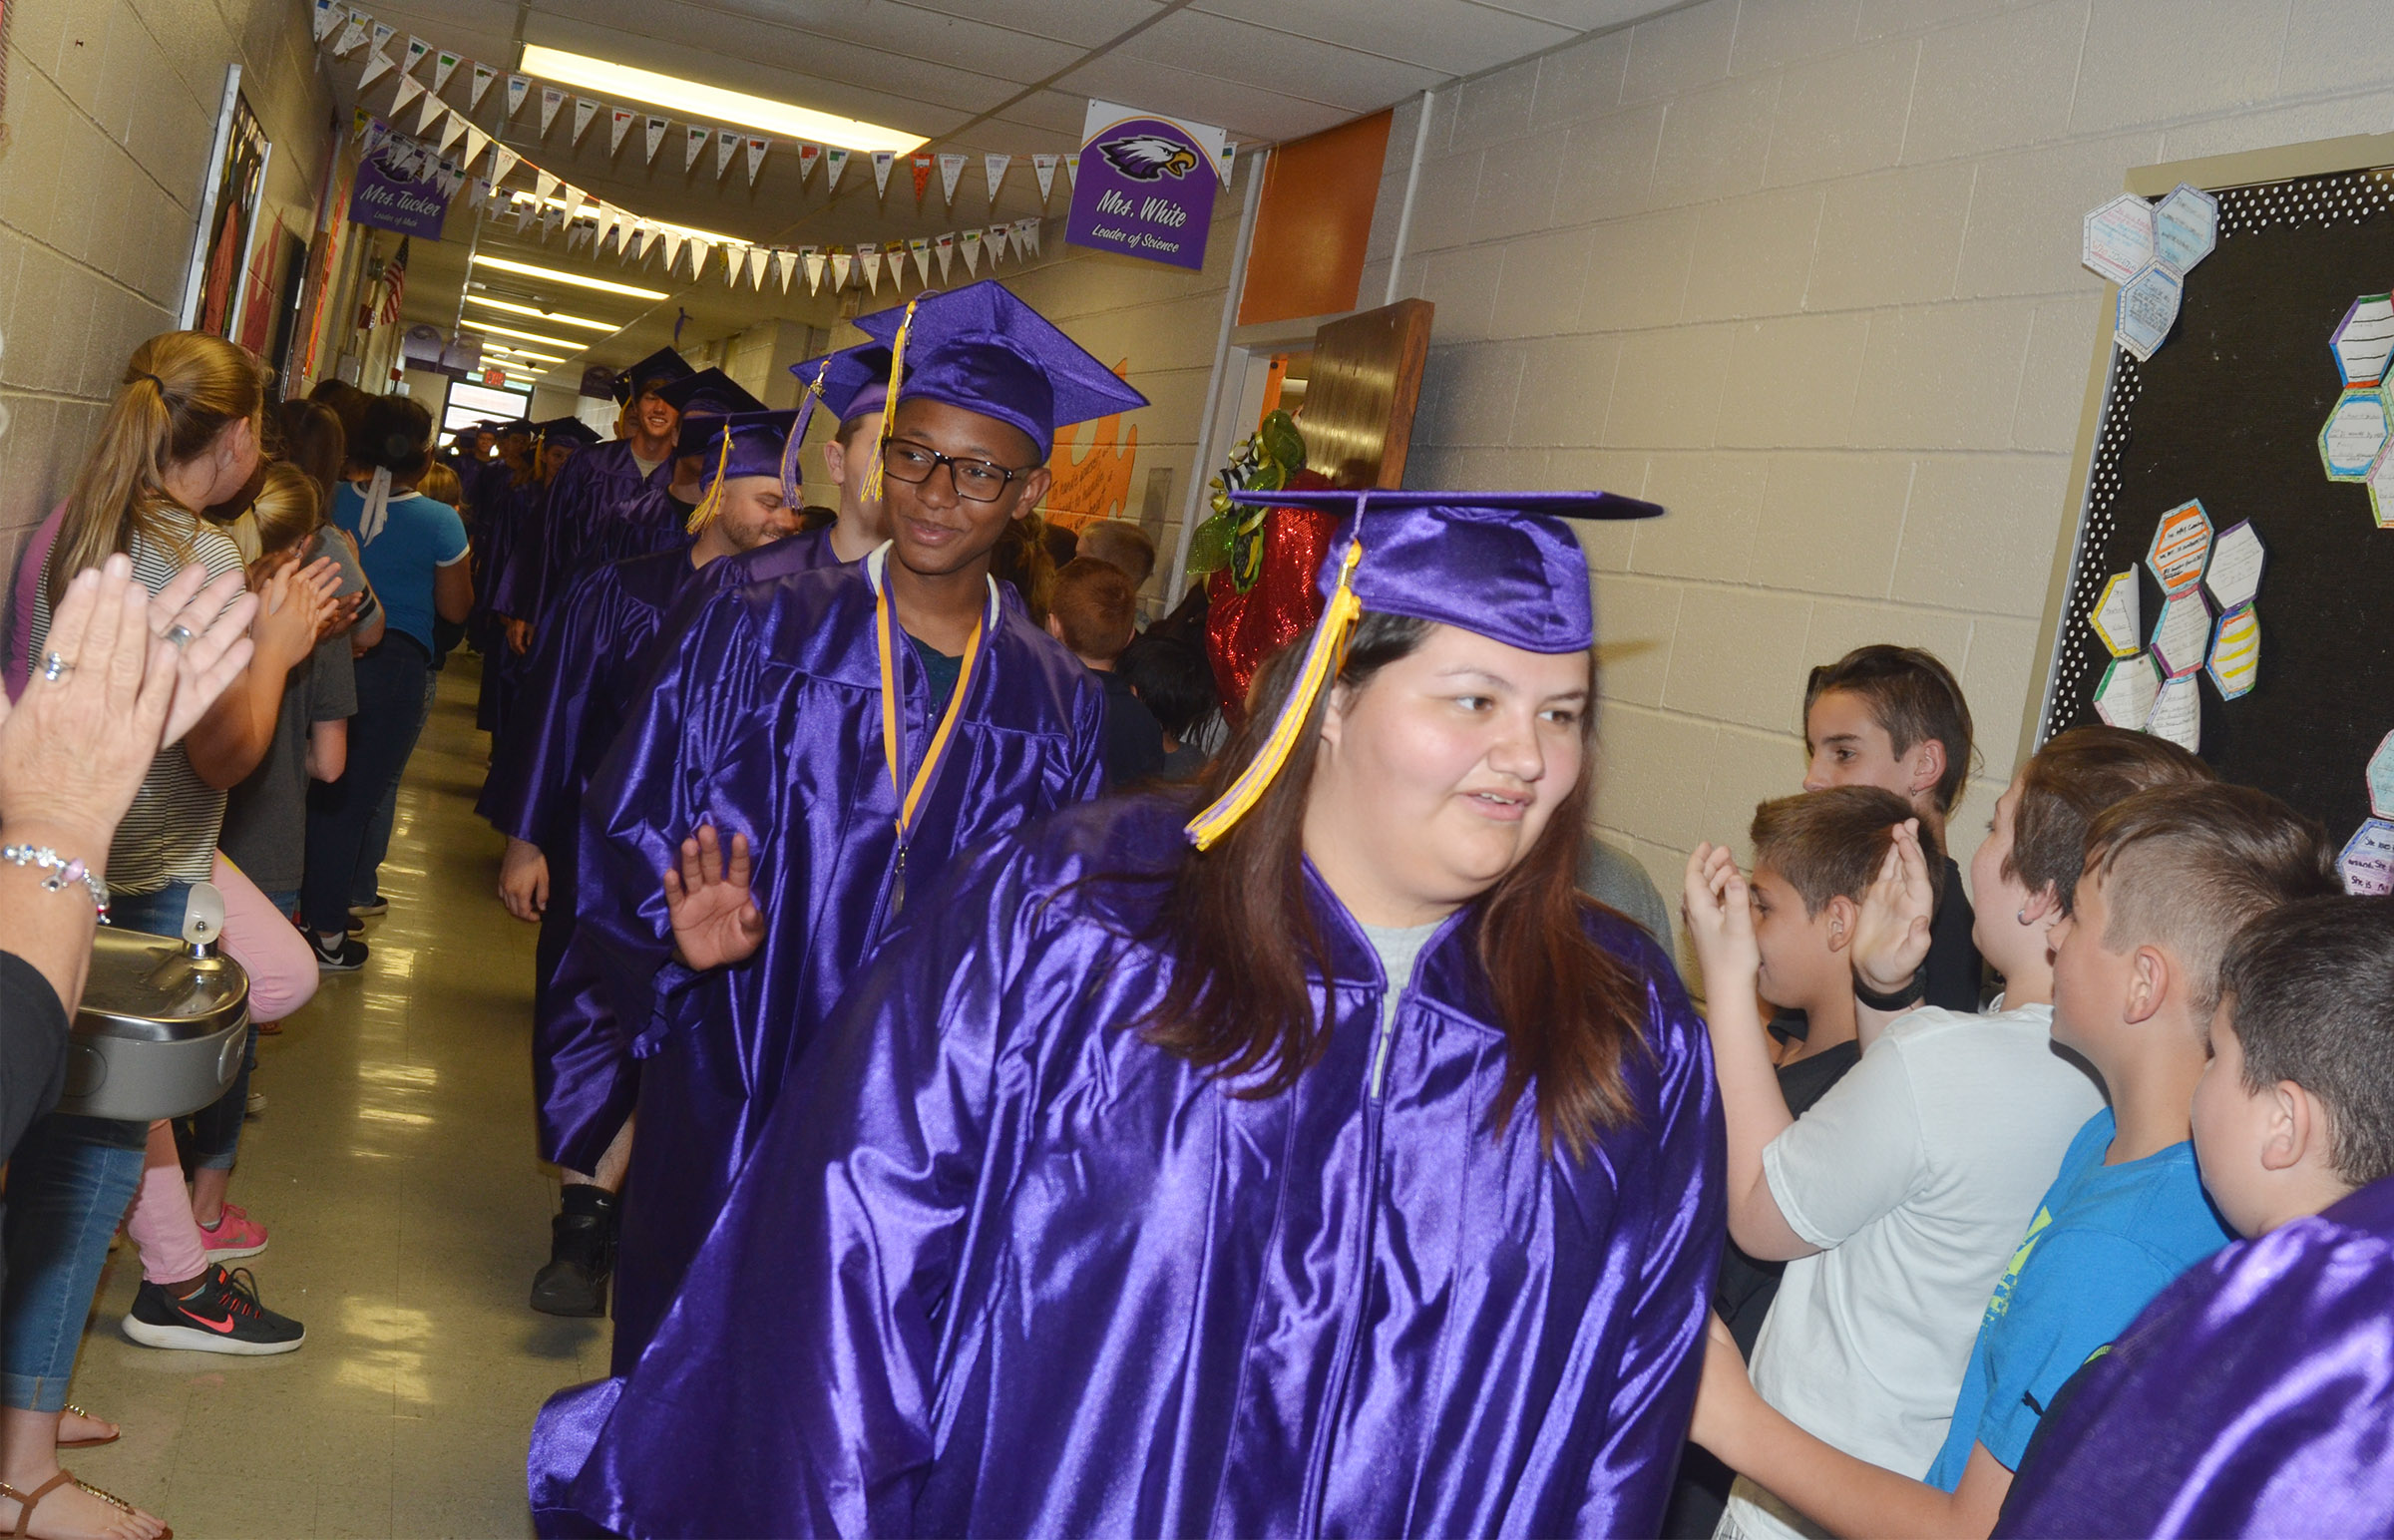 CHS seniors Jaleel Cowan, at left, and Laura May Gutierrez walk down the CMS hallways with their classmates.